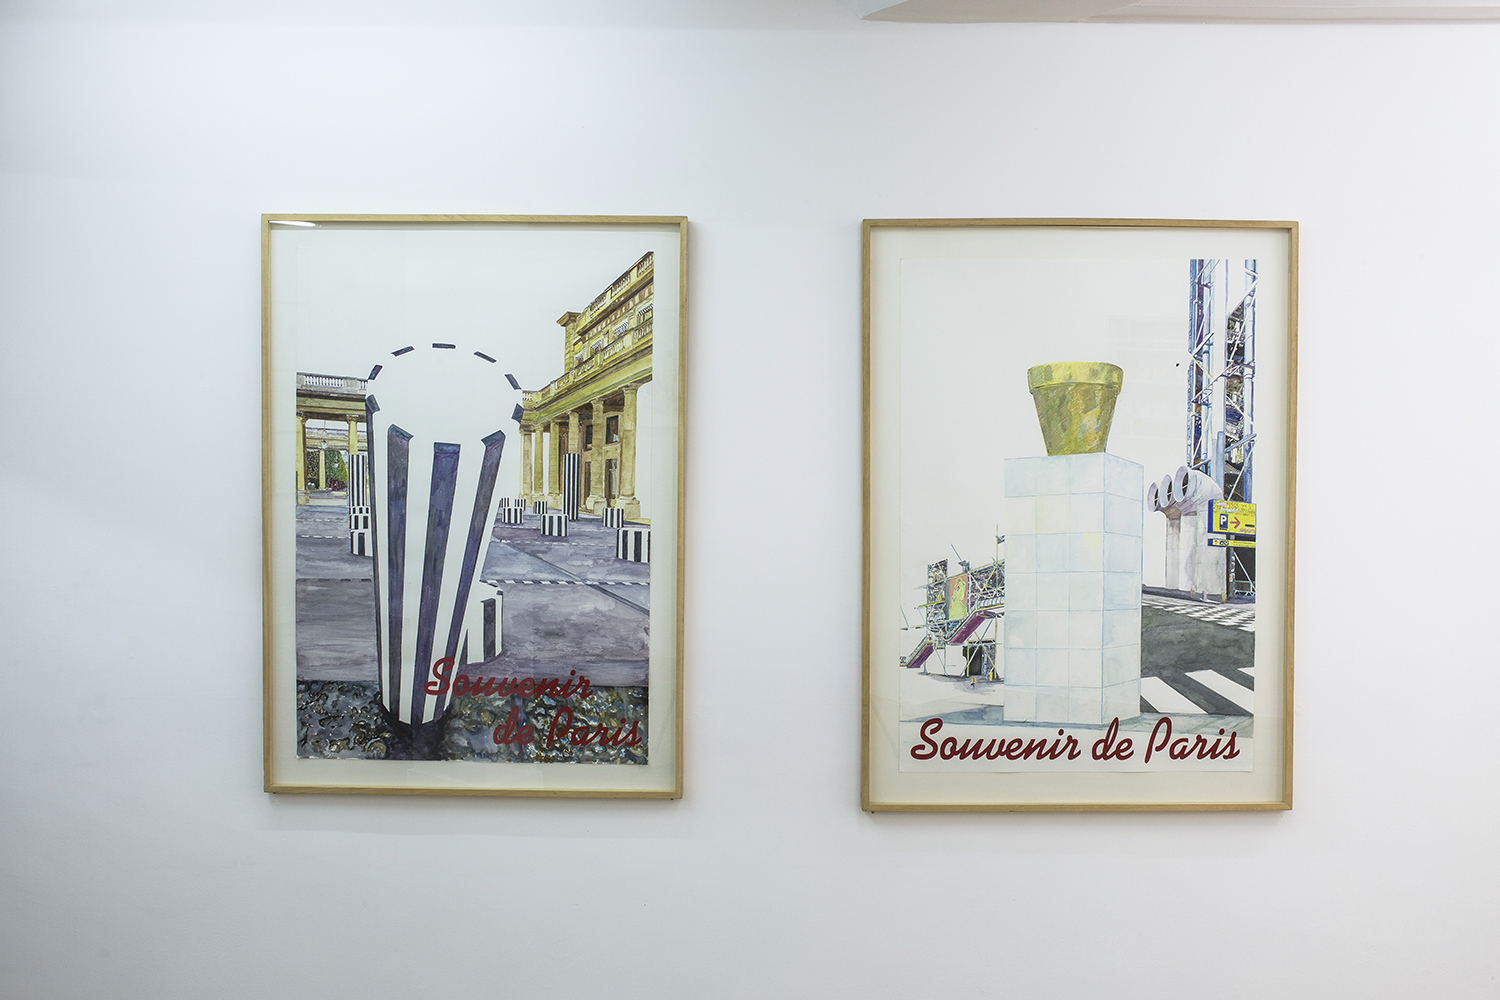 Pierre Petit Les icônes, 2002 Watercolors, collage, colored pencils, pastel 75 x 105 cm